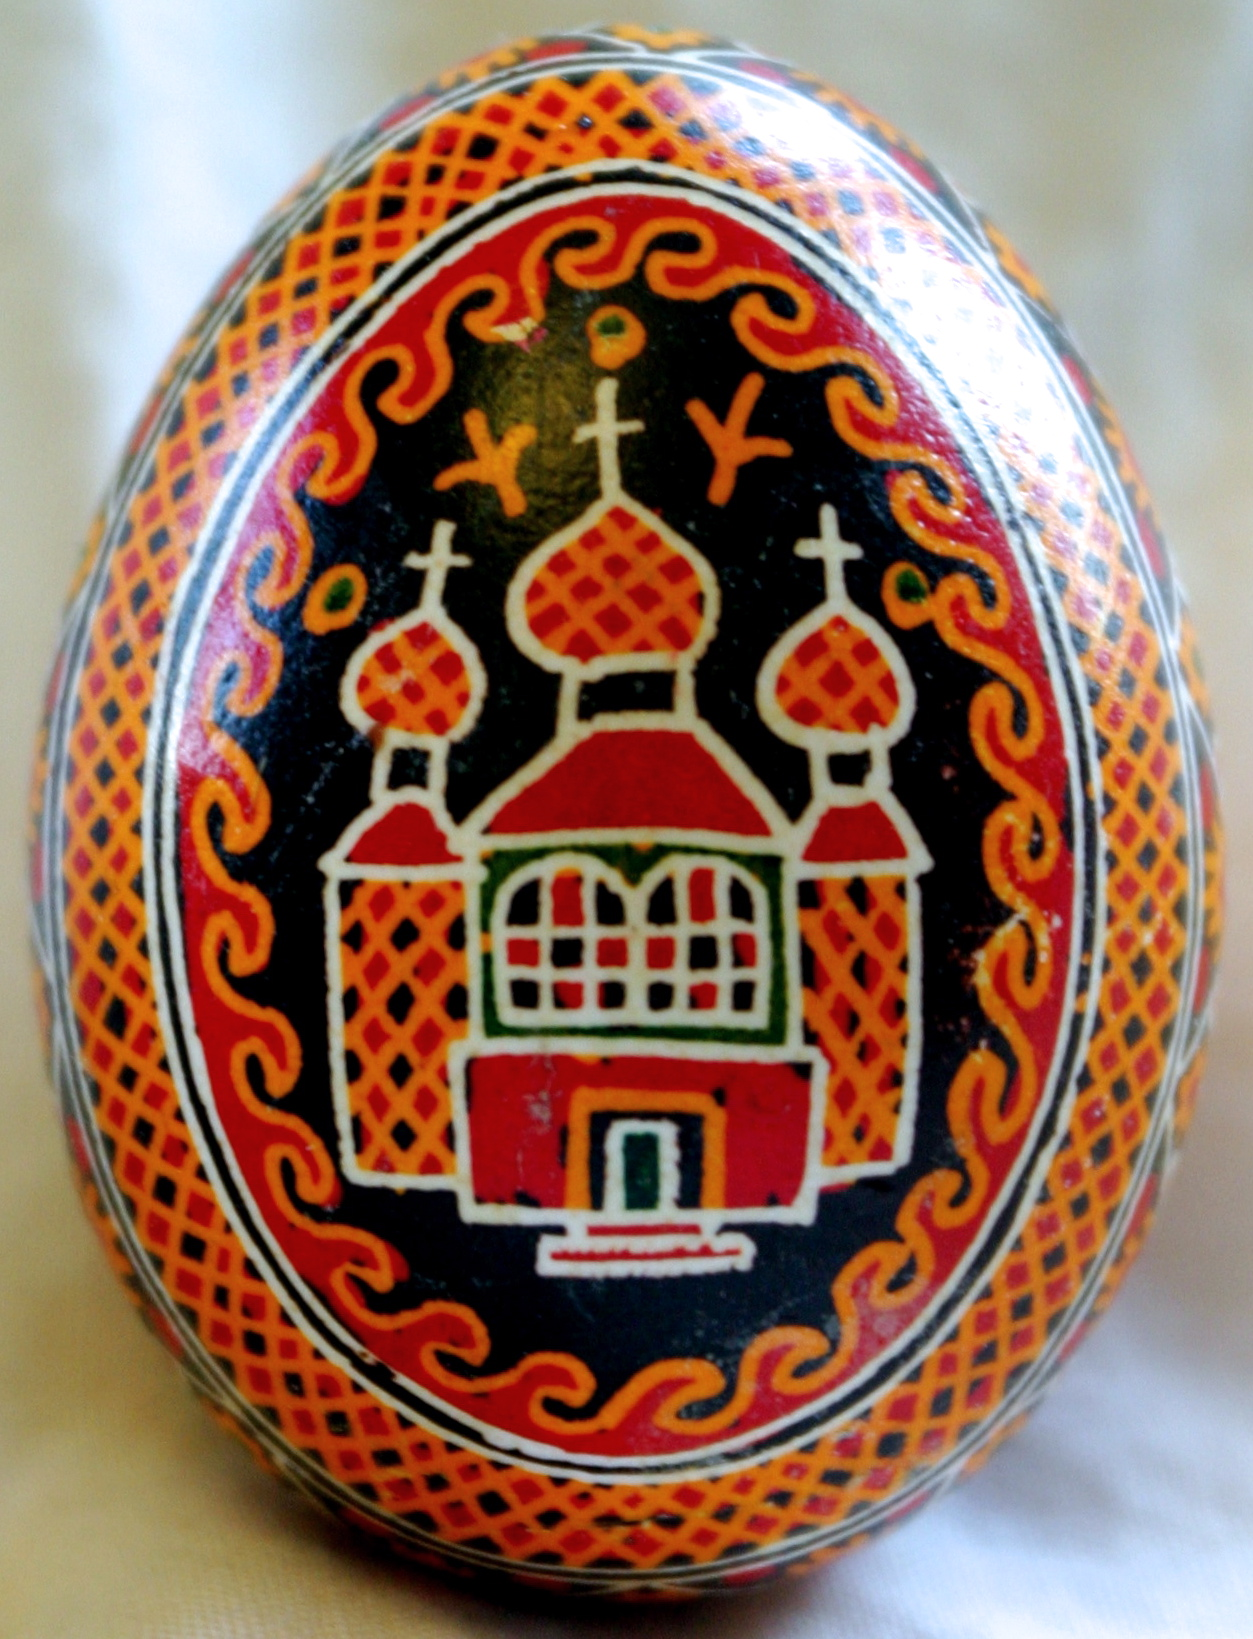 An example of a traditional Ukrainian pysanka from the village of Kosmach in Ivano-Frankivsk. (By Lubap - Own work, CC BY-SA 4.0, https://commons.wikimedia.org/w/index.php?curid=38546959)